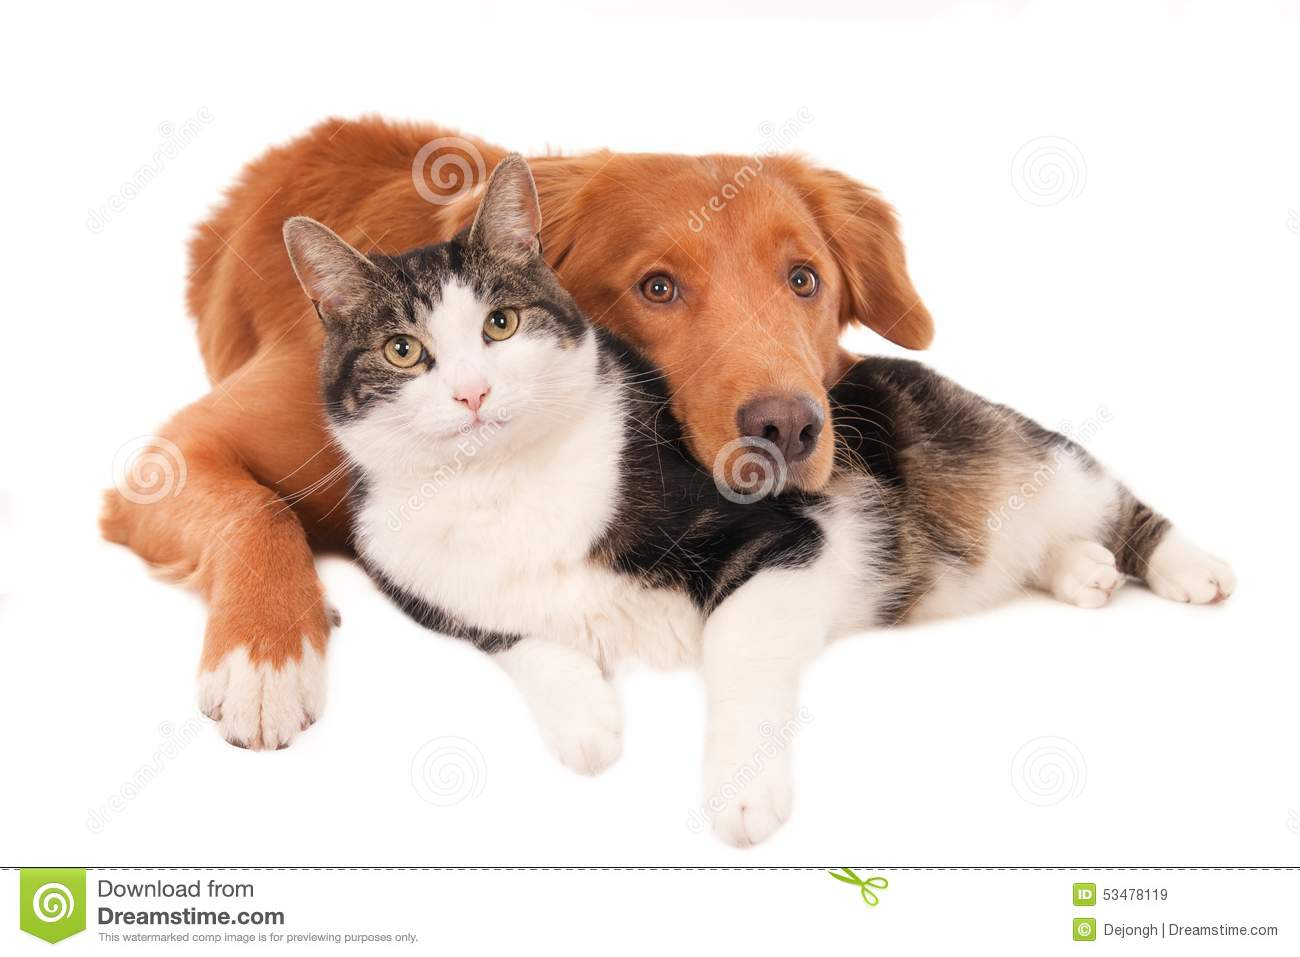 Cat And Dog In An Intimate Pose Isolated On White Stock